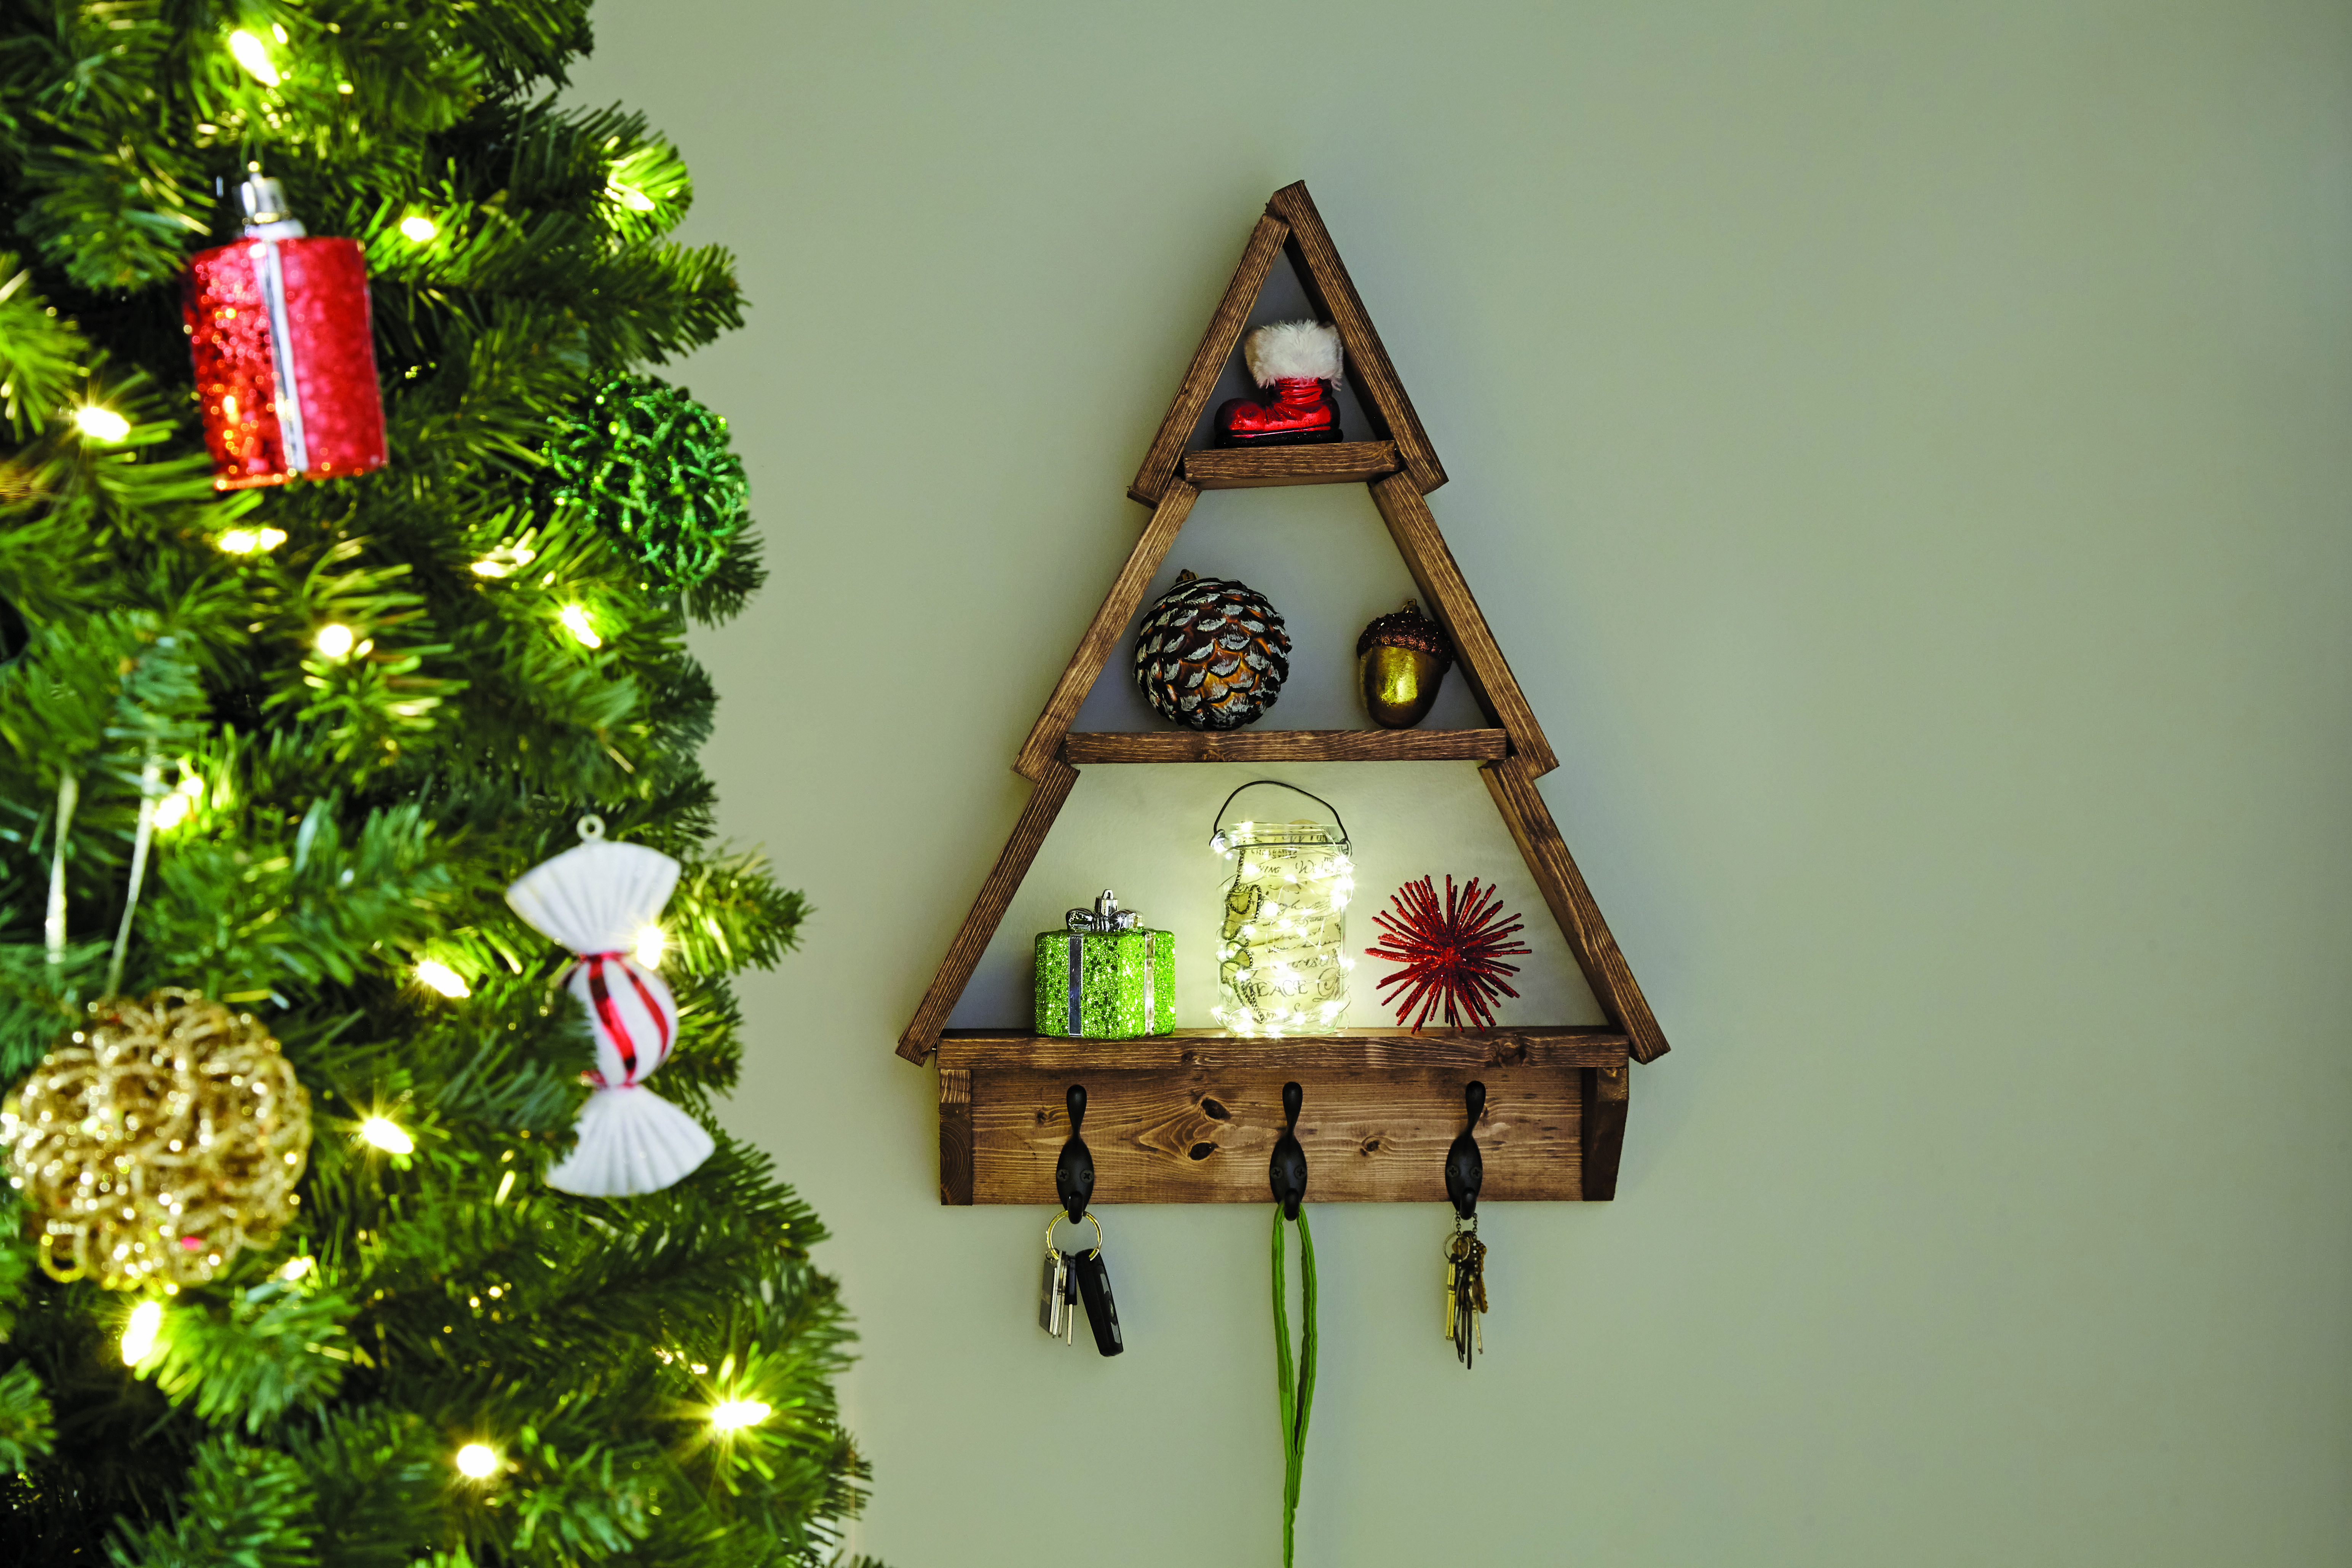 Christmas Tree Shelf- DIY Workshop Announcement